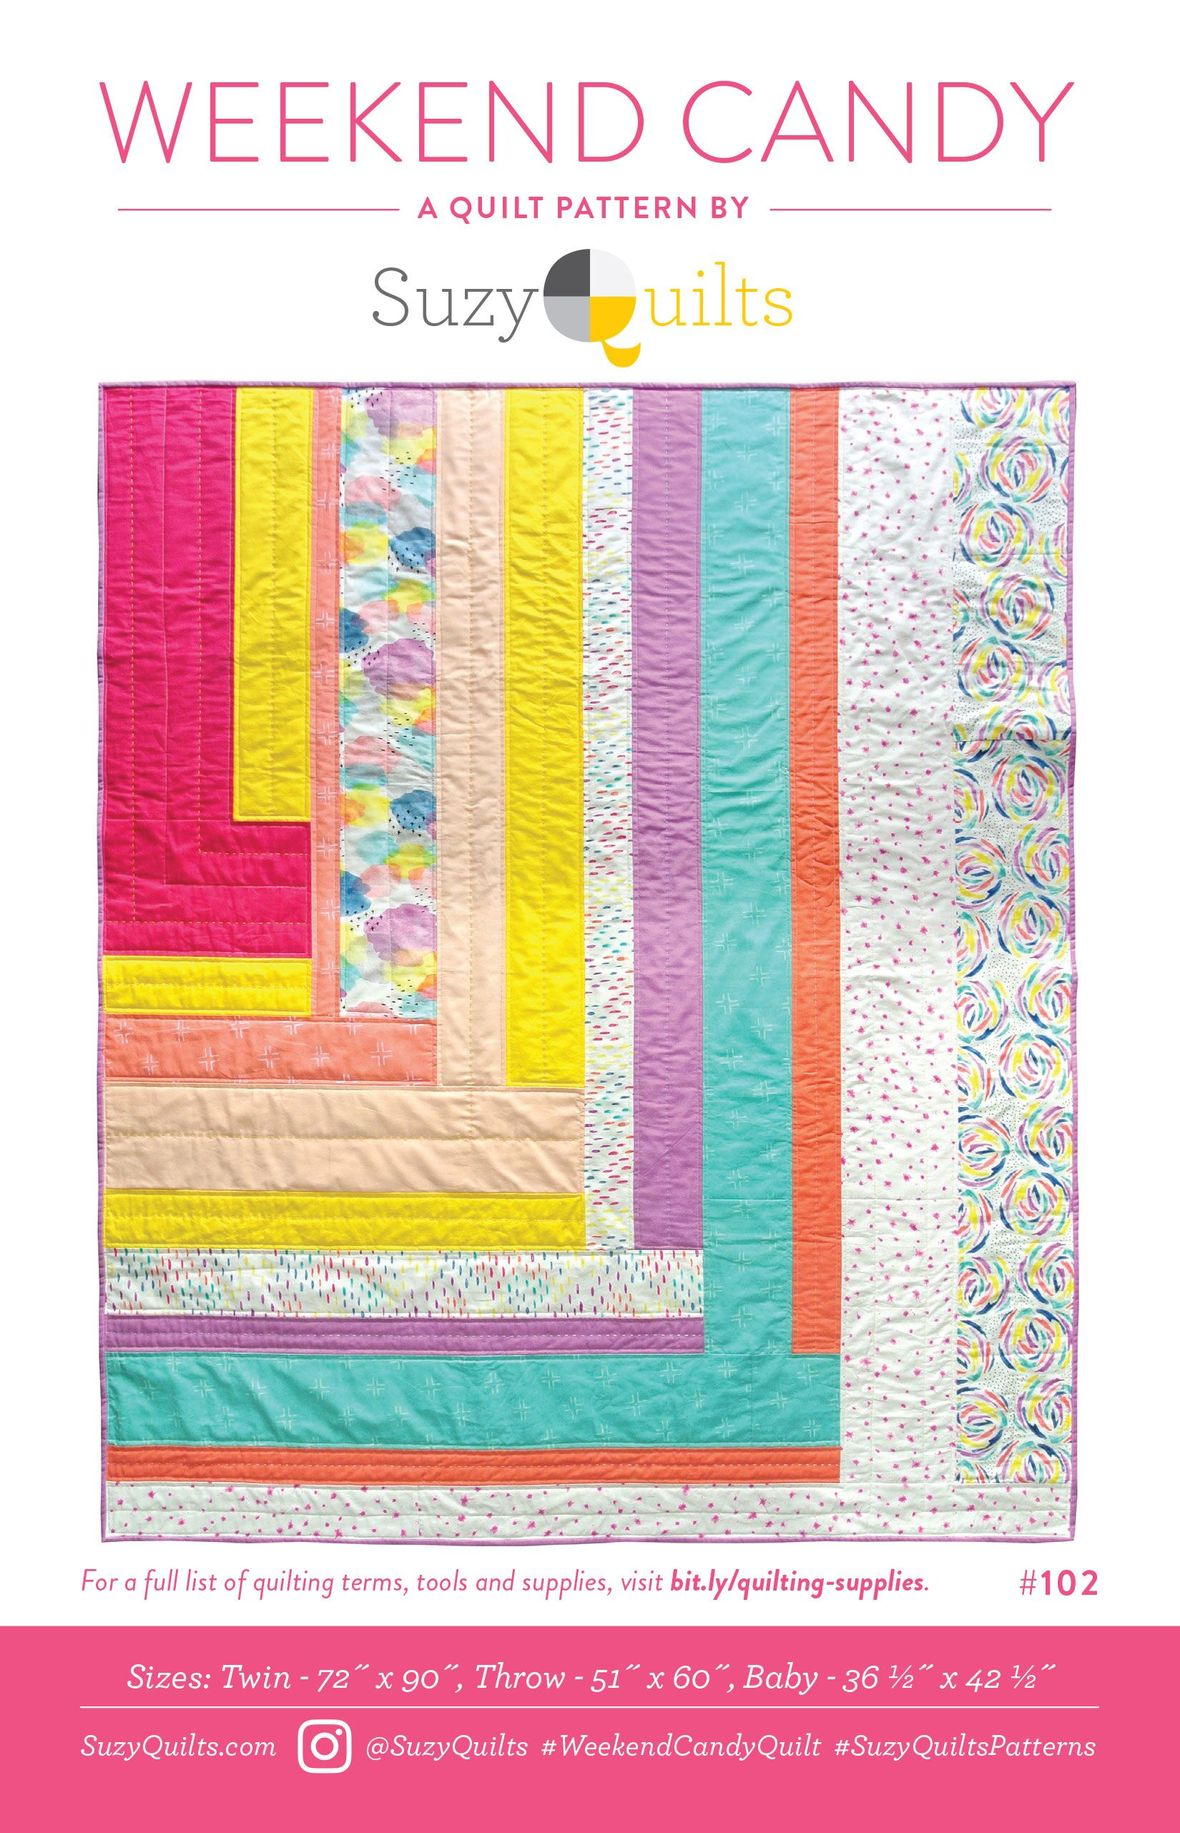 Weekend Candy Quilt- suzy quilts